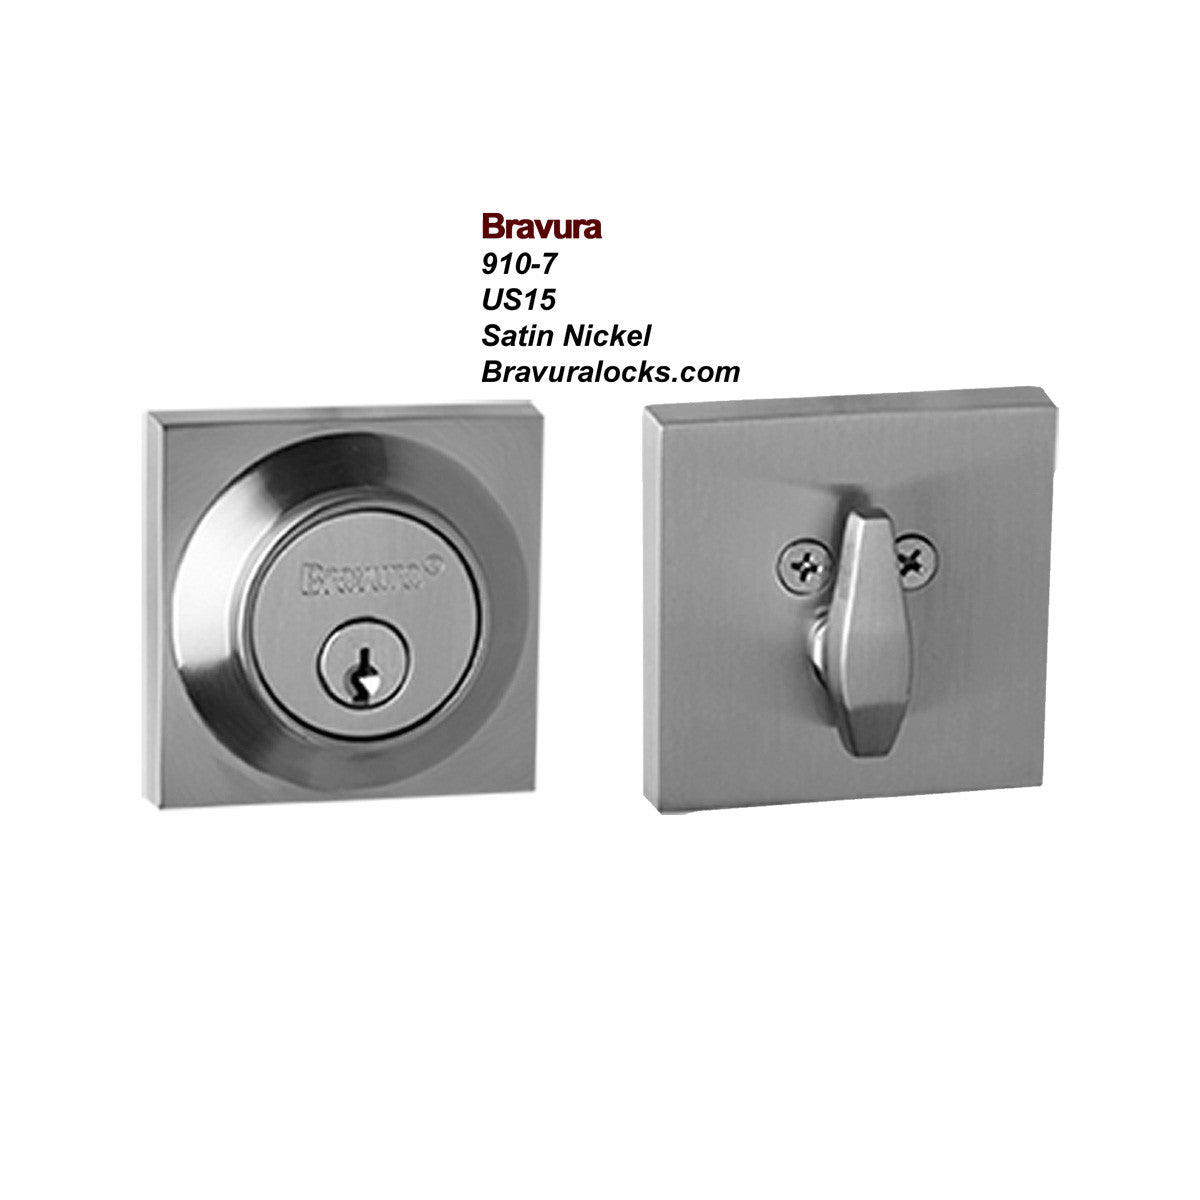 Bravura 910 7 Exterior Keyed Deadbolt Lock, Satin Nickel